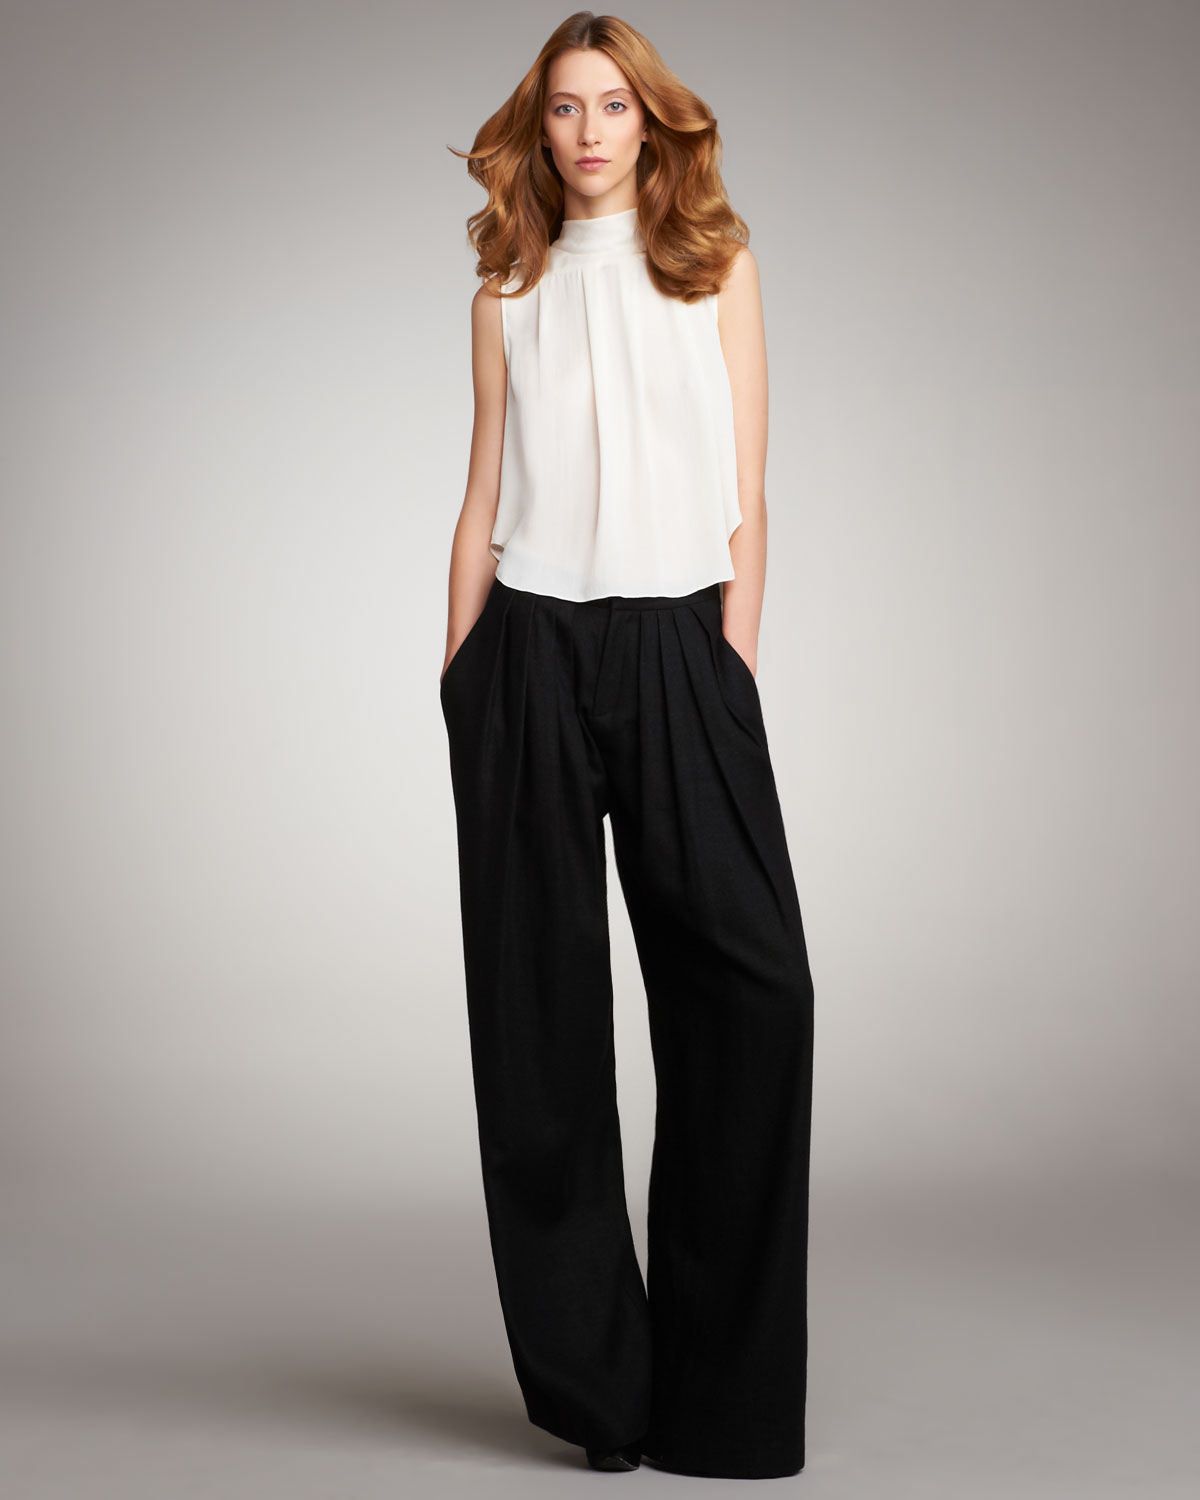 Tall pants by asos tall. Stretch woven fabric. High-rise waist. Pleat detail. Side pockets. Wide-cut leg. Regular fit - true to size. Machine wash. 76% polyester. 18% viscose. 6% theotherqi.cf: $